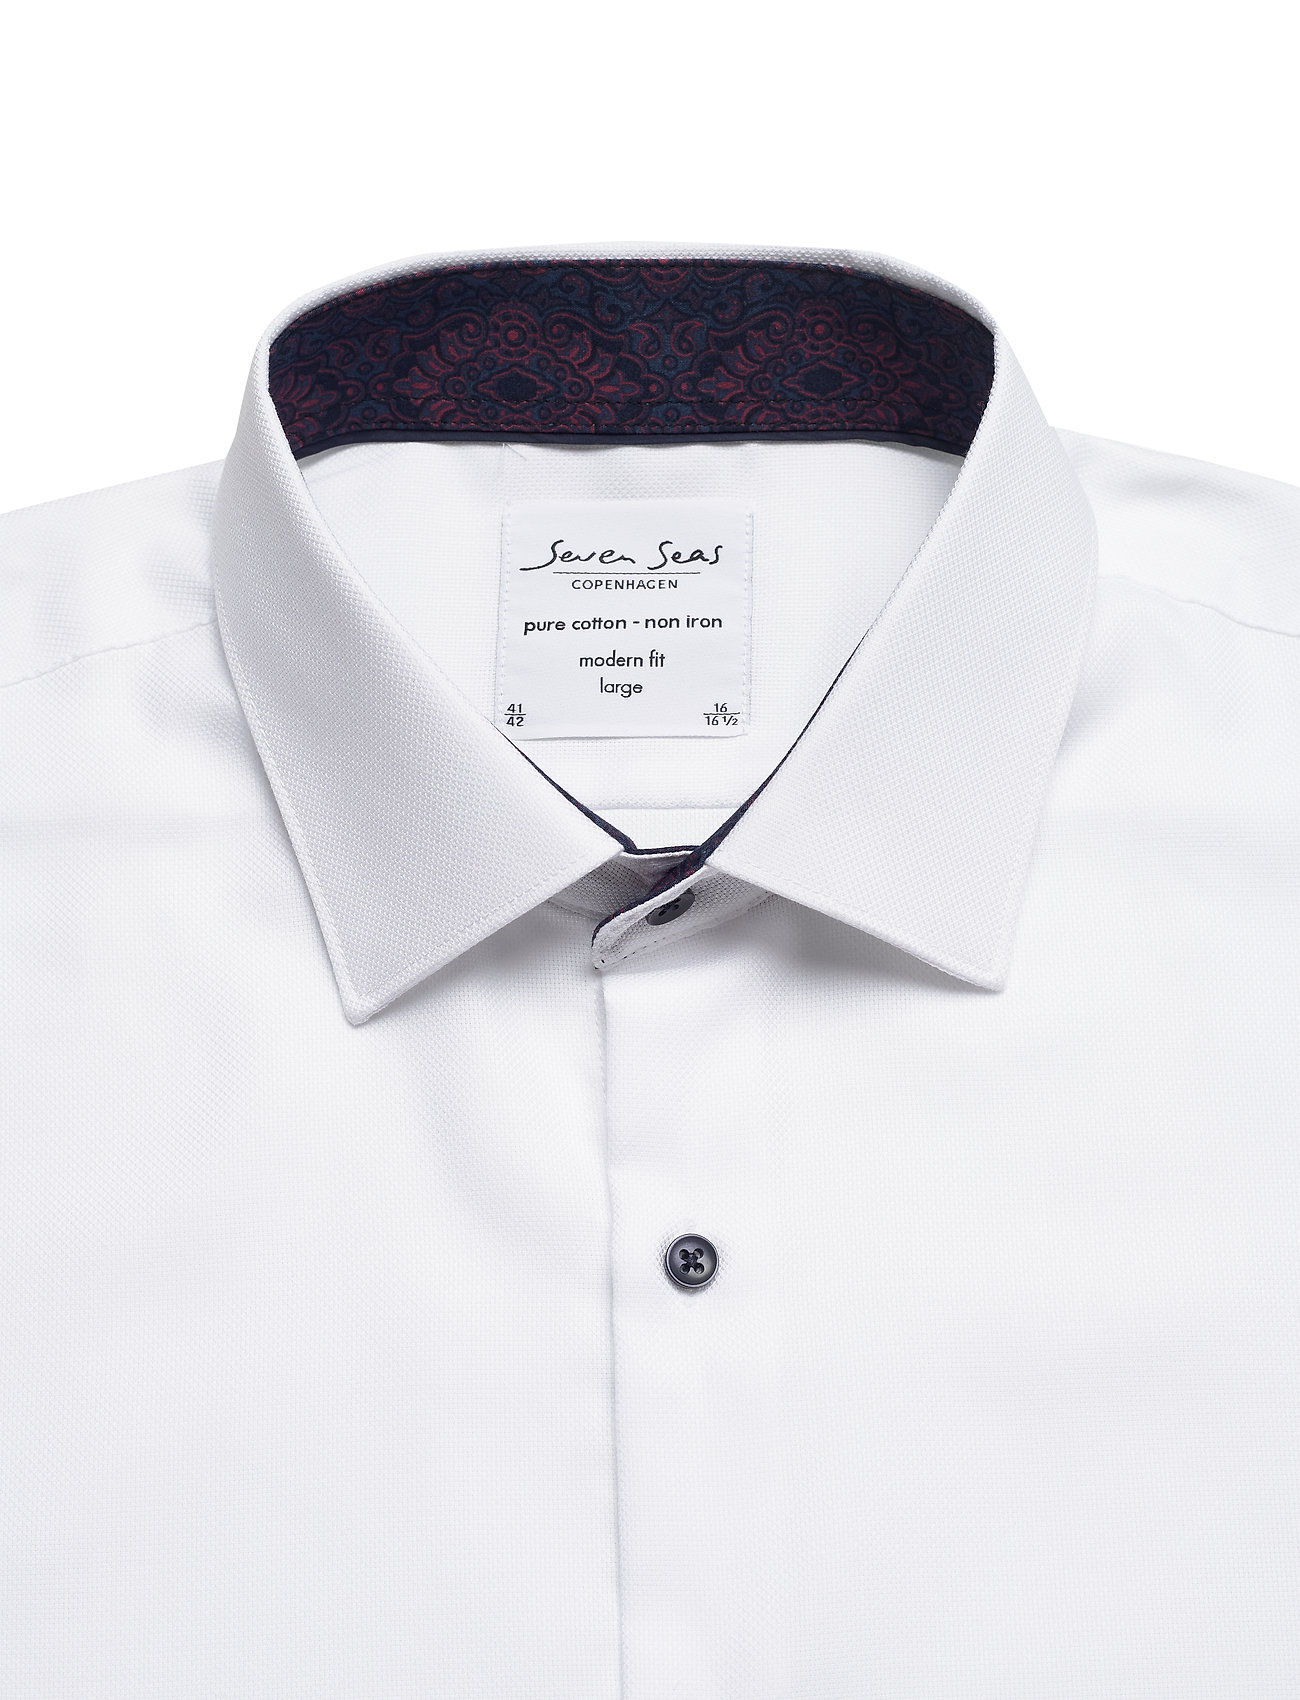 Seven Seas Copenhagen ROYAL OXFORD W/BENTLEY - Skjorter WHITE - Menn Klær